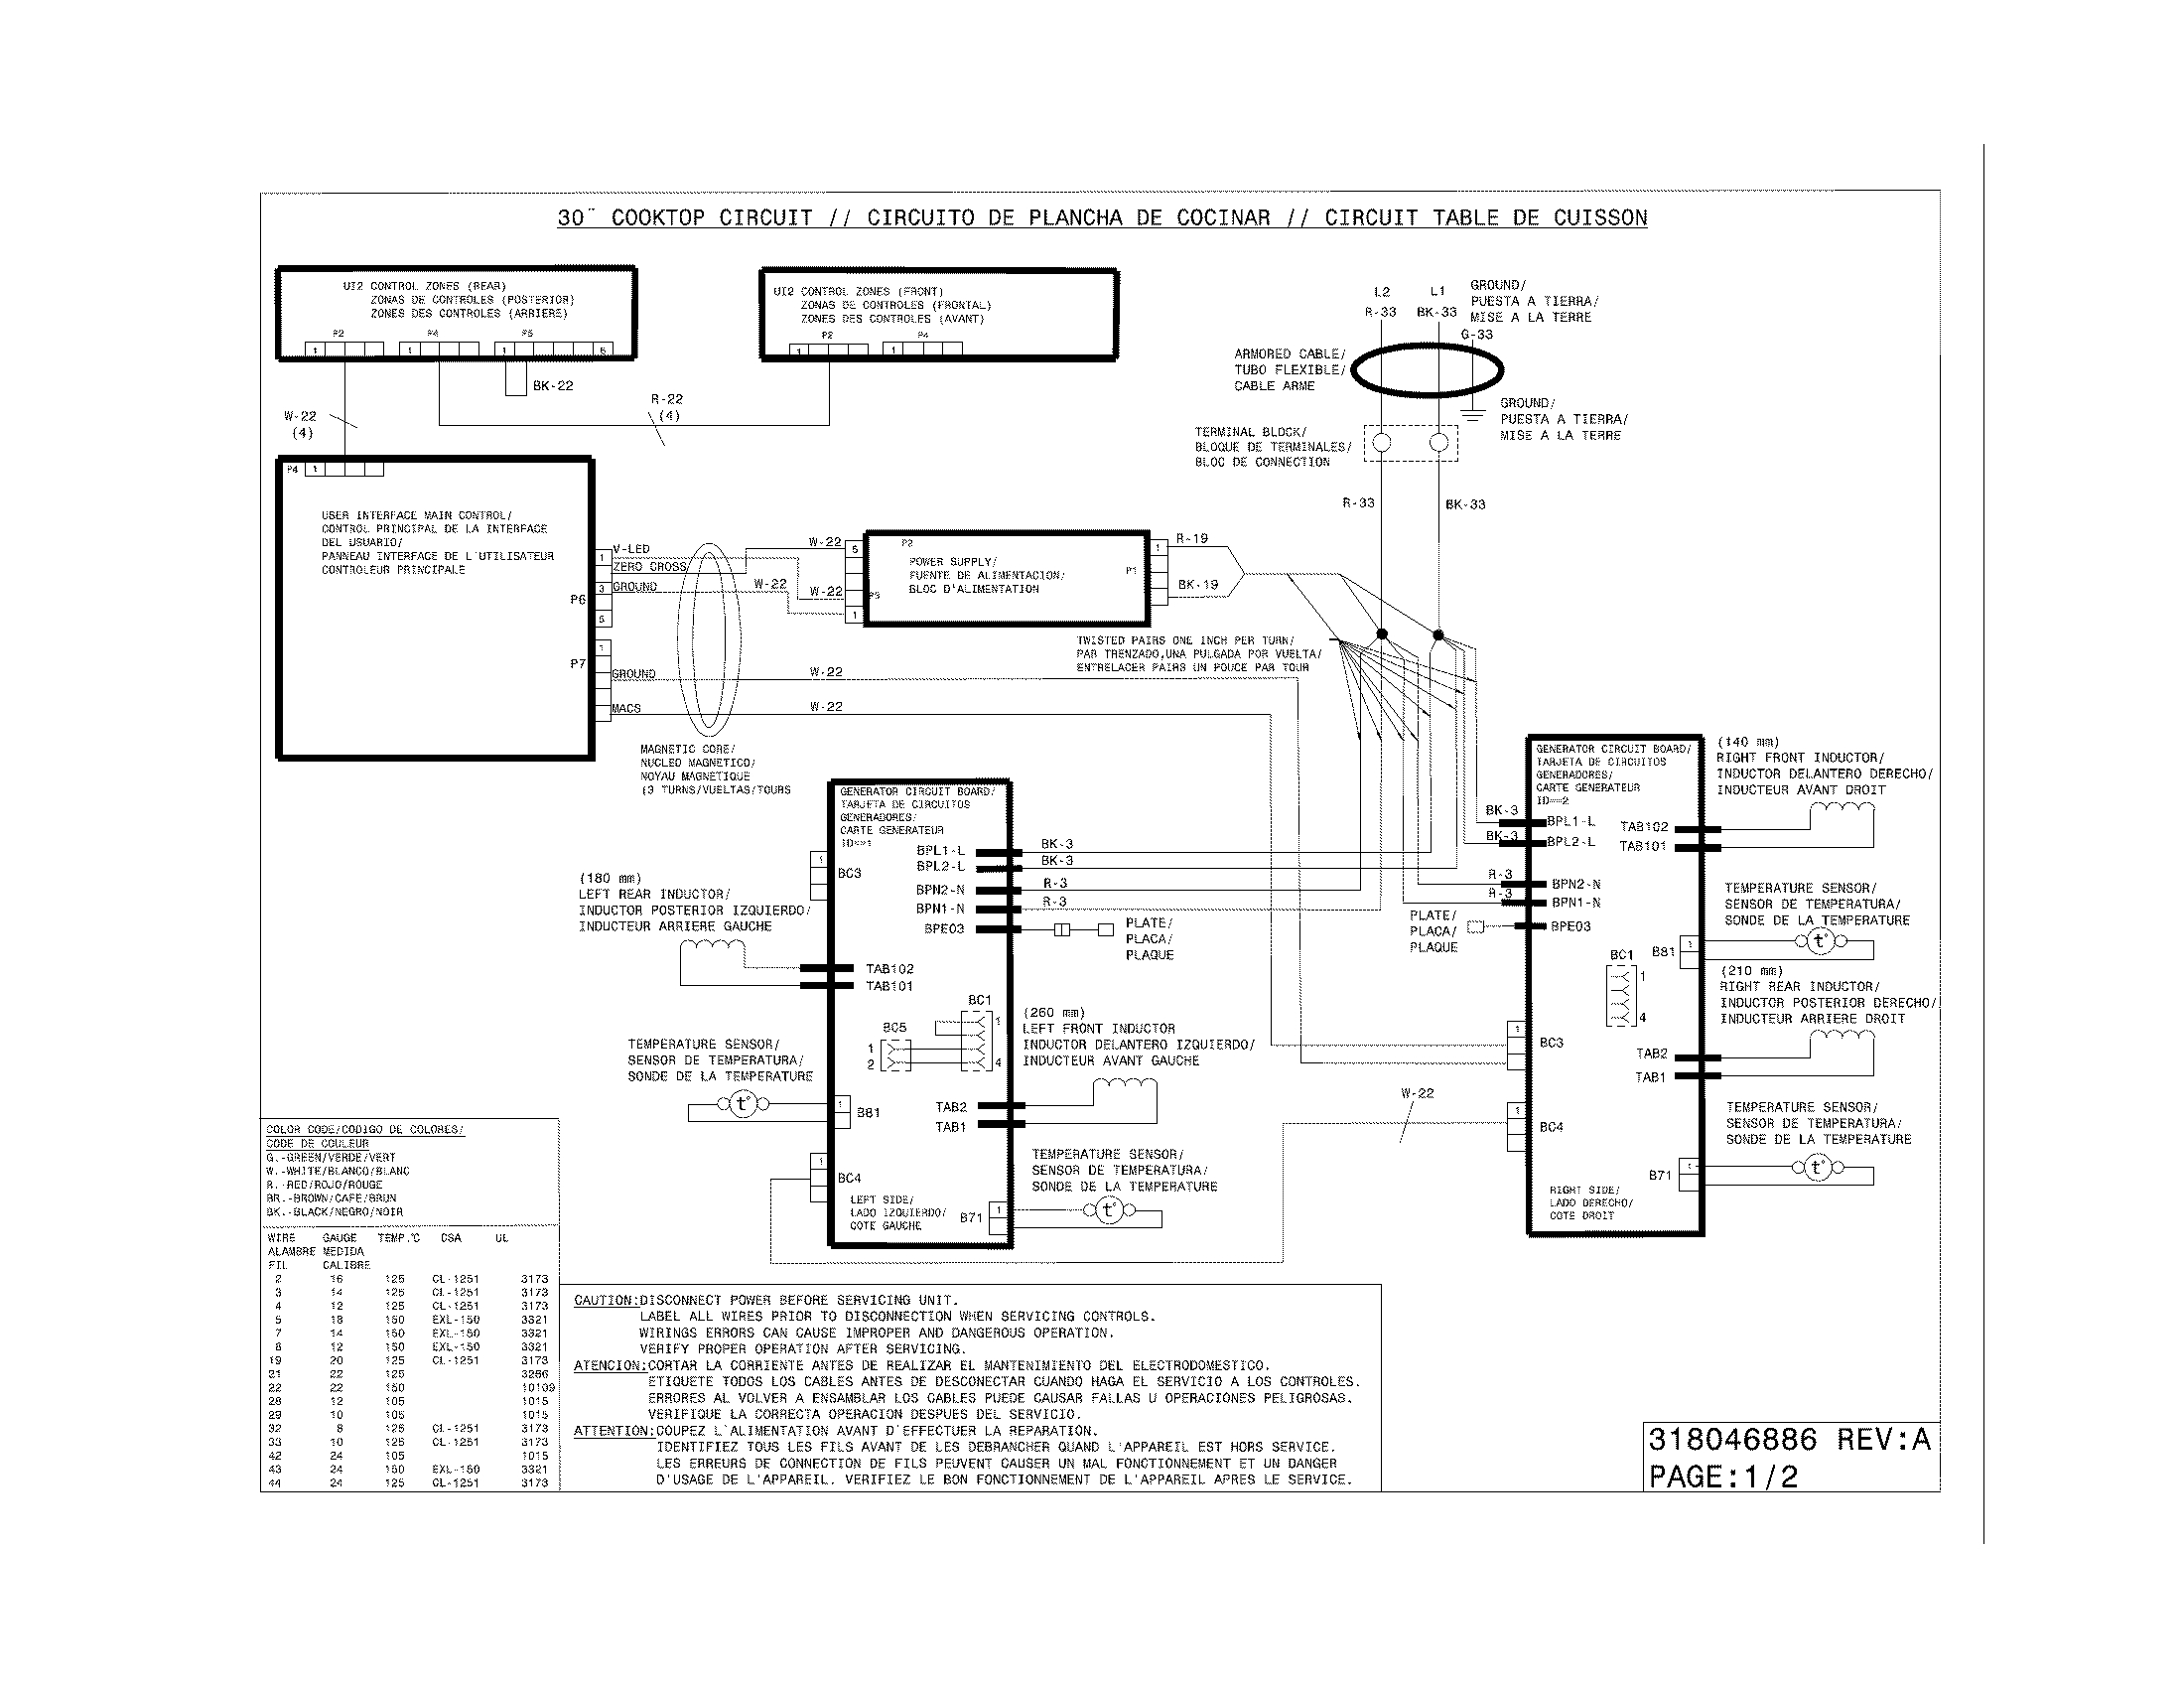 hes 5000 wiring diagram for tekonsha voyager brake controller door position switch library